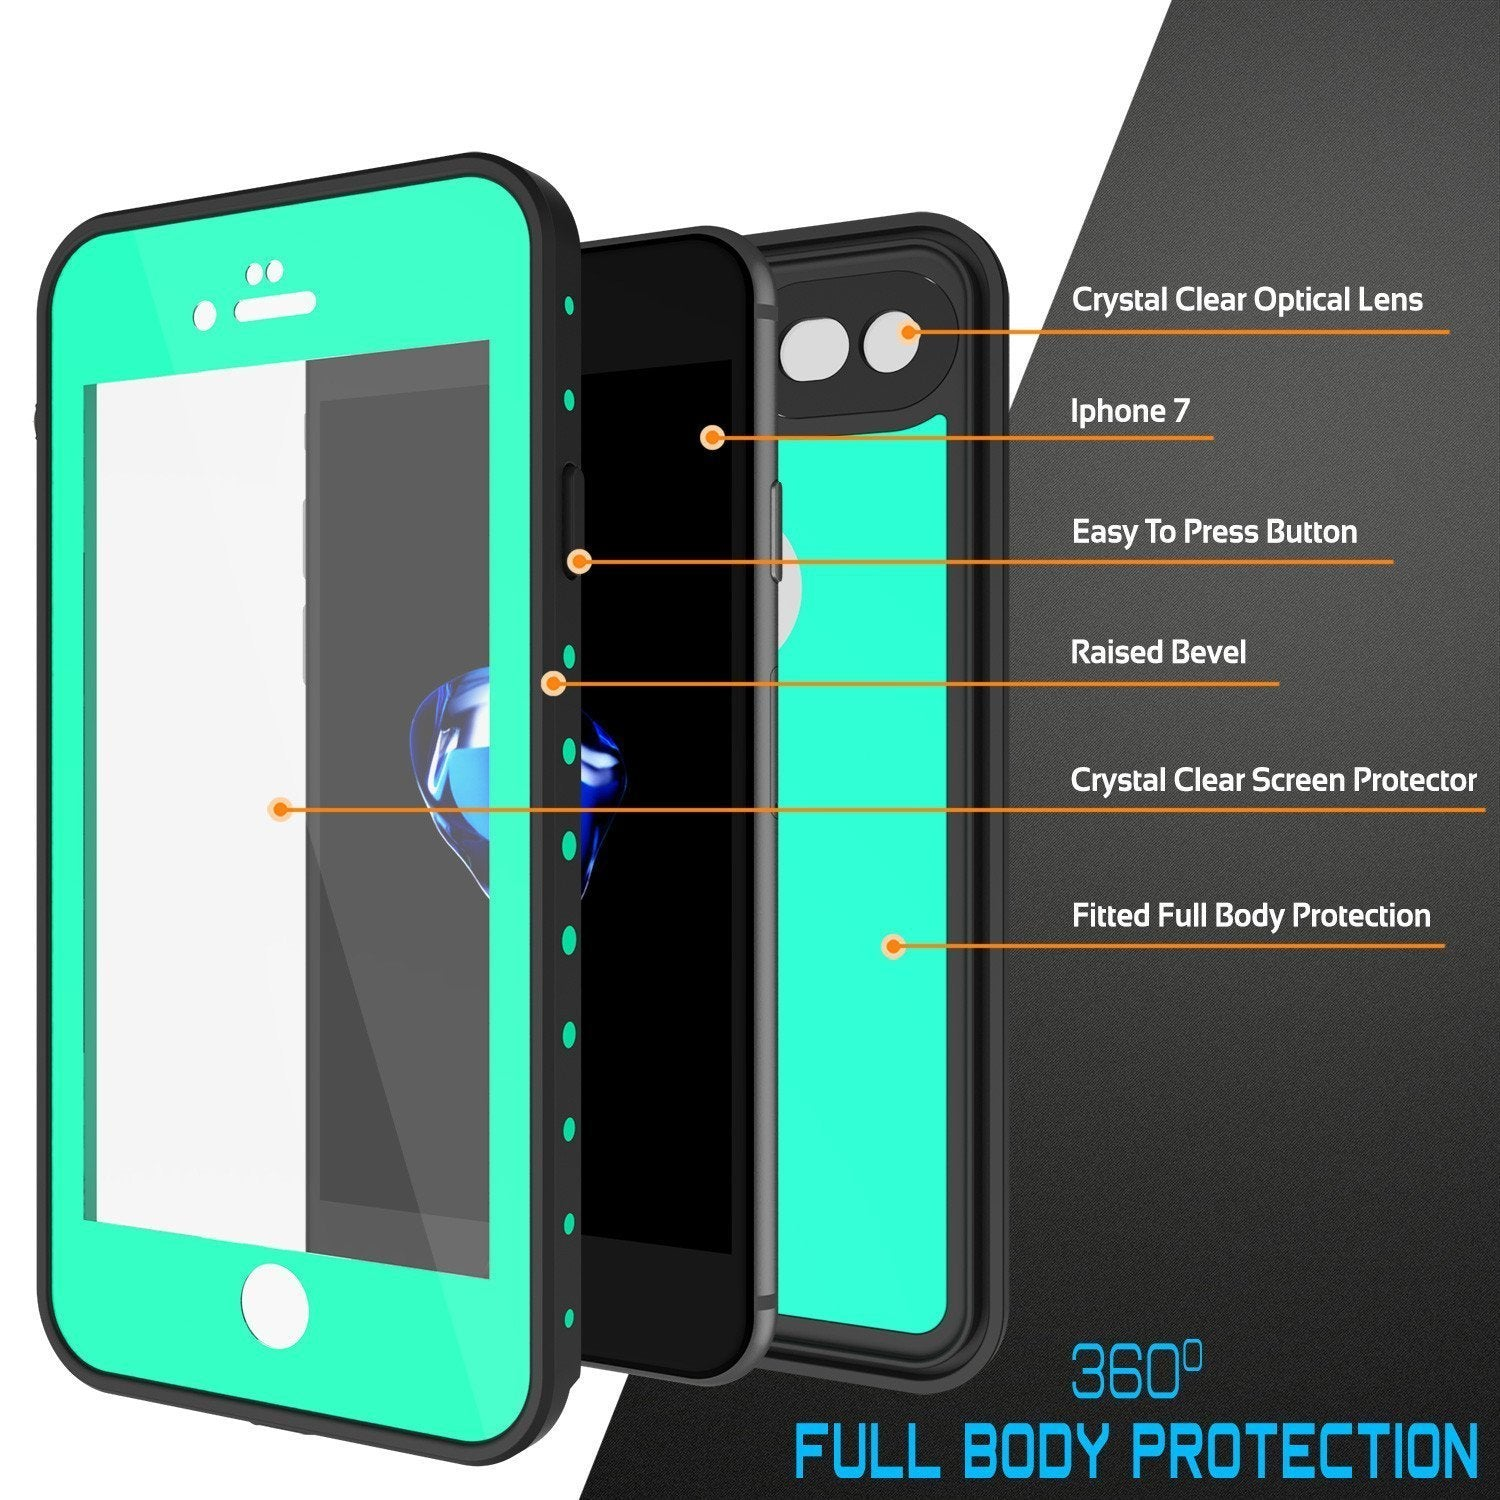 iPhone 8 Waterproof Case, Punkcase [Teal] [StudStar Series] [Slim Fit] [IP68 Certified]] [Dirtproof] [Snowproof]